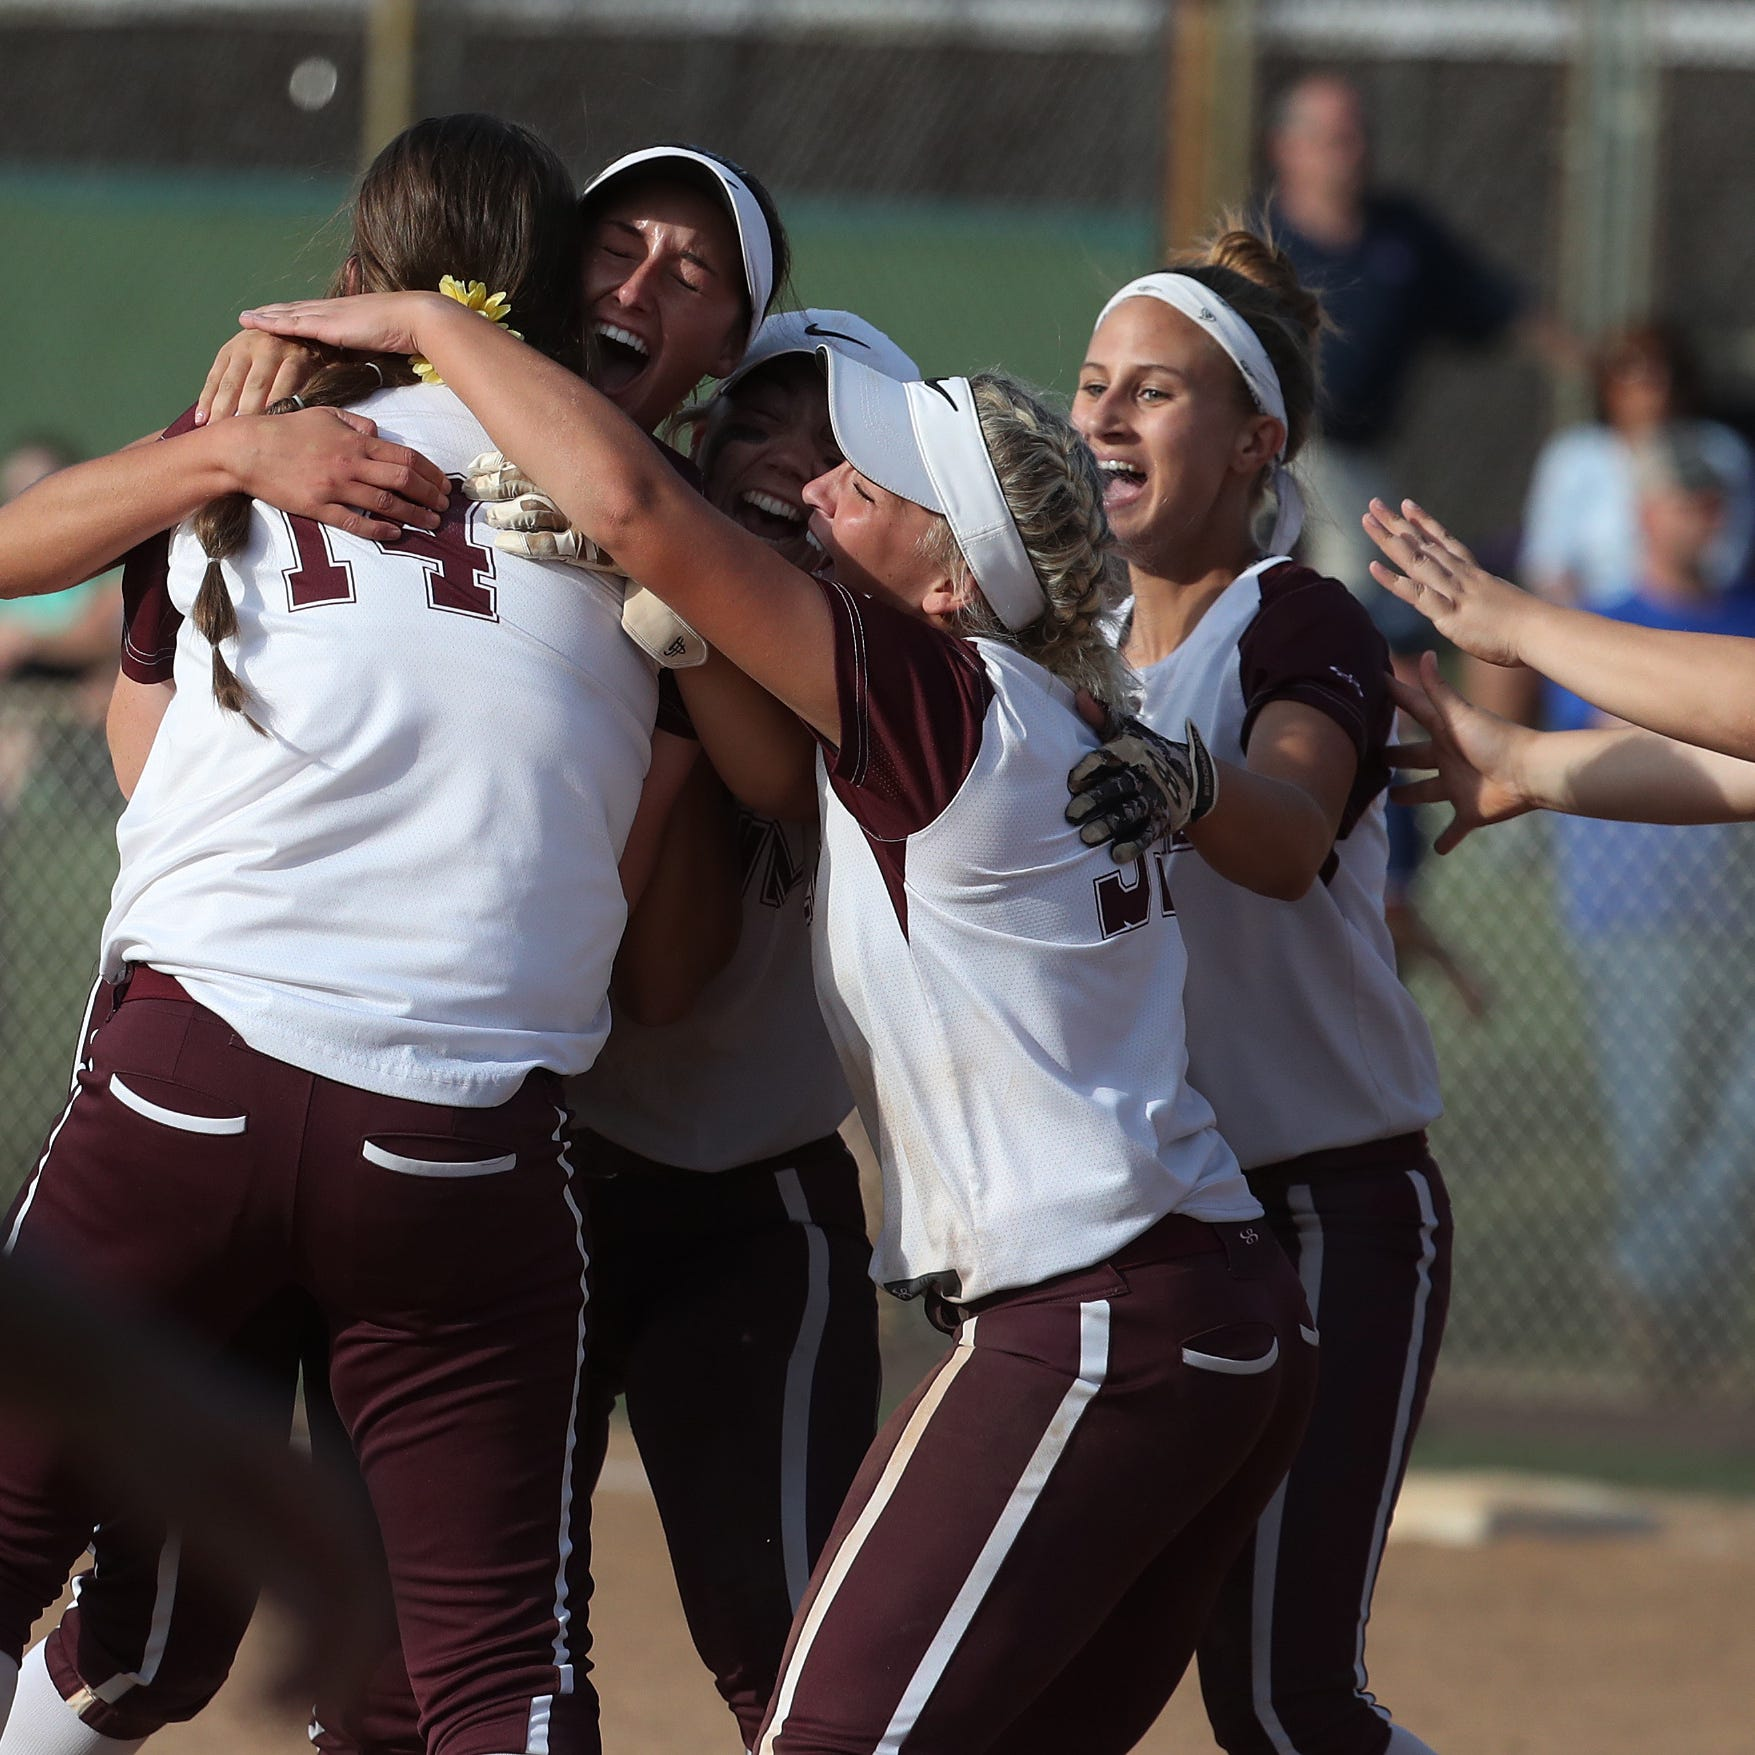 Complete effort puts Caravel back in DIAA softball finals